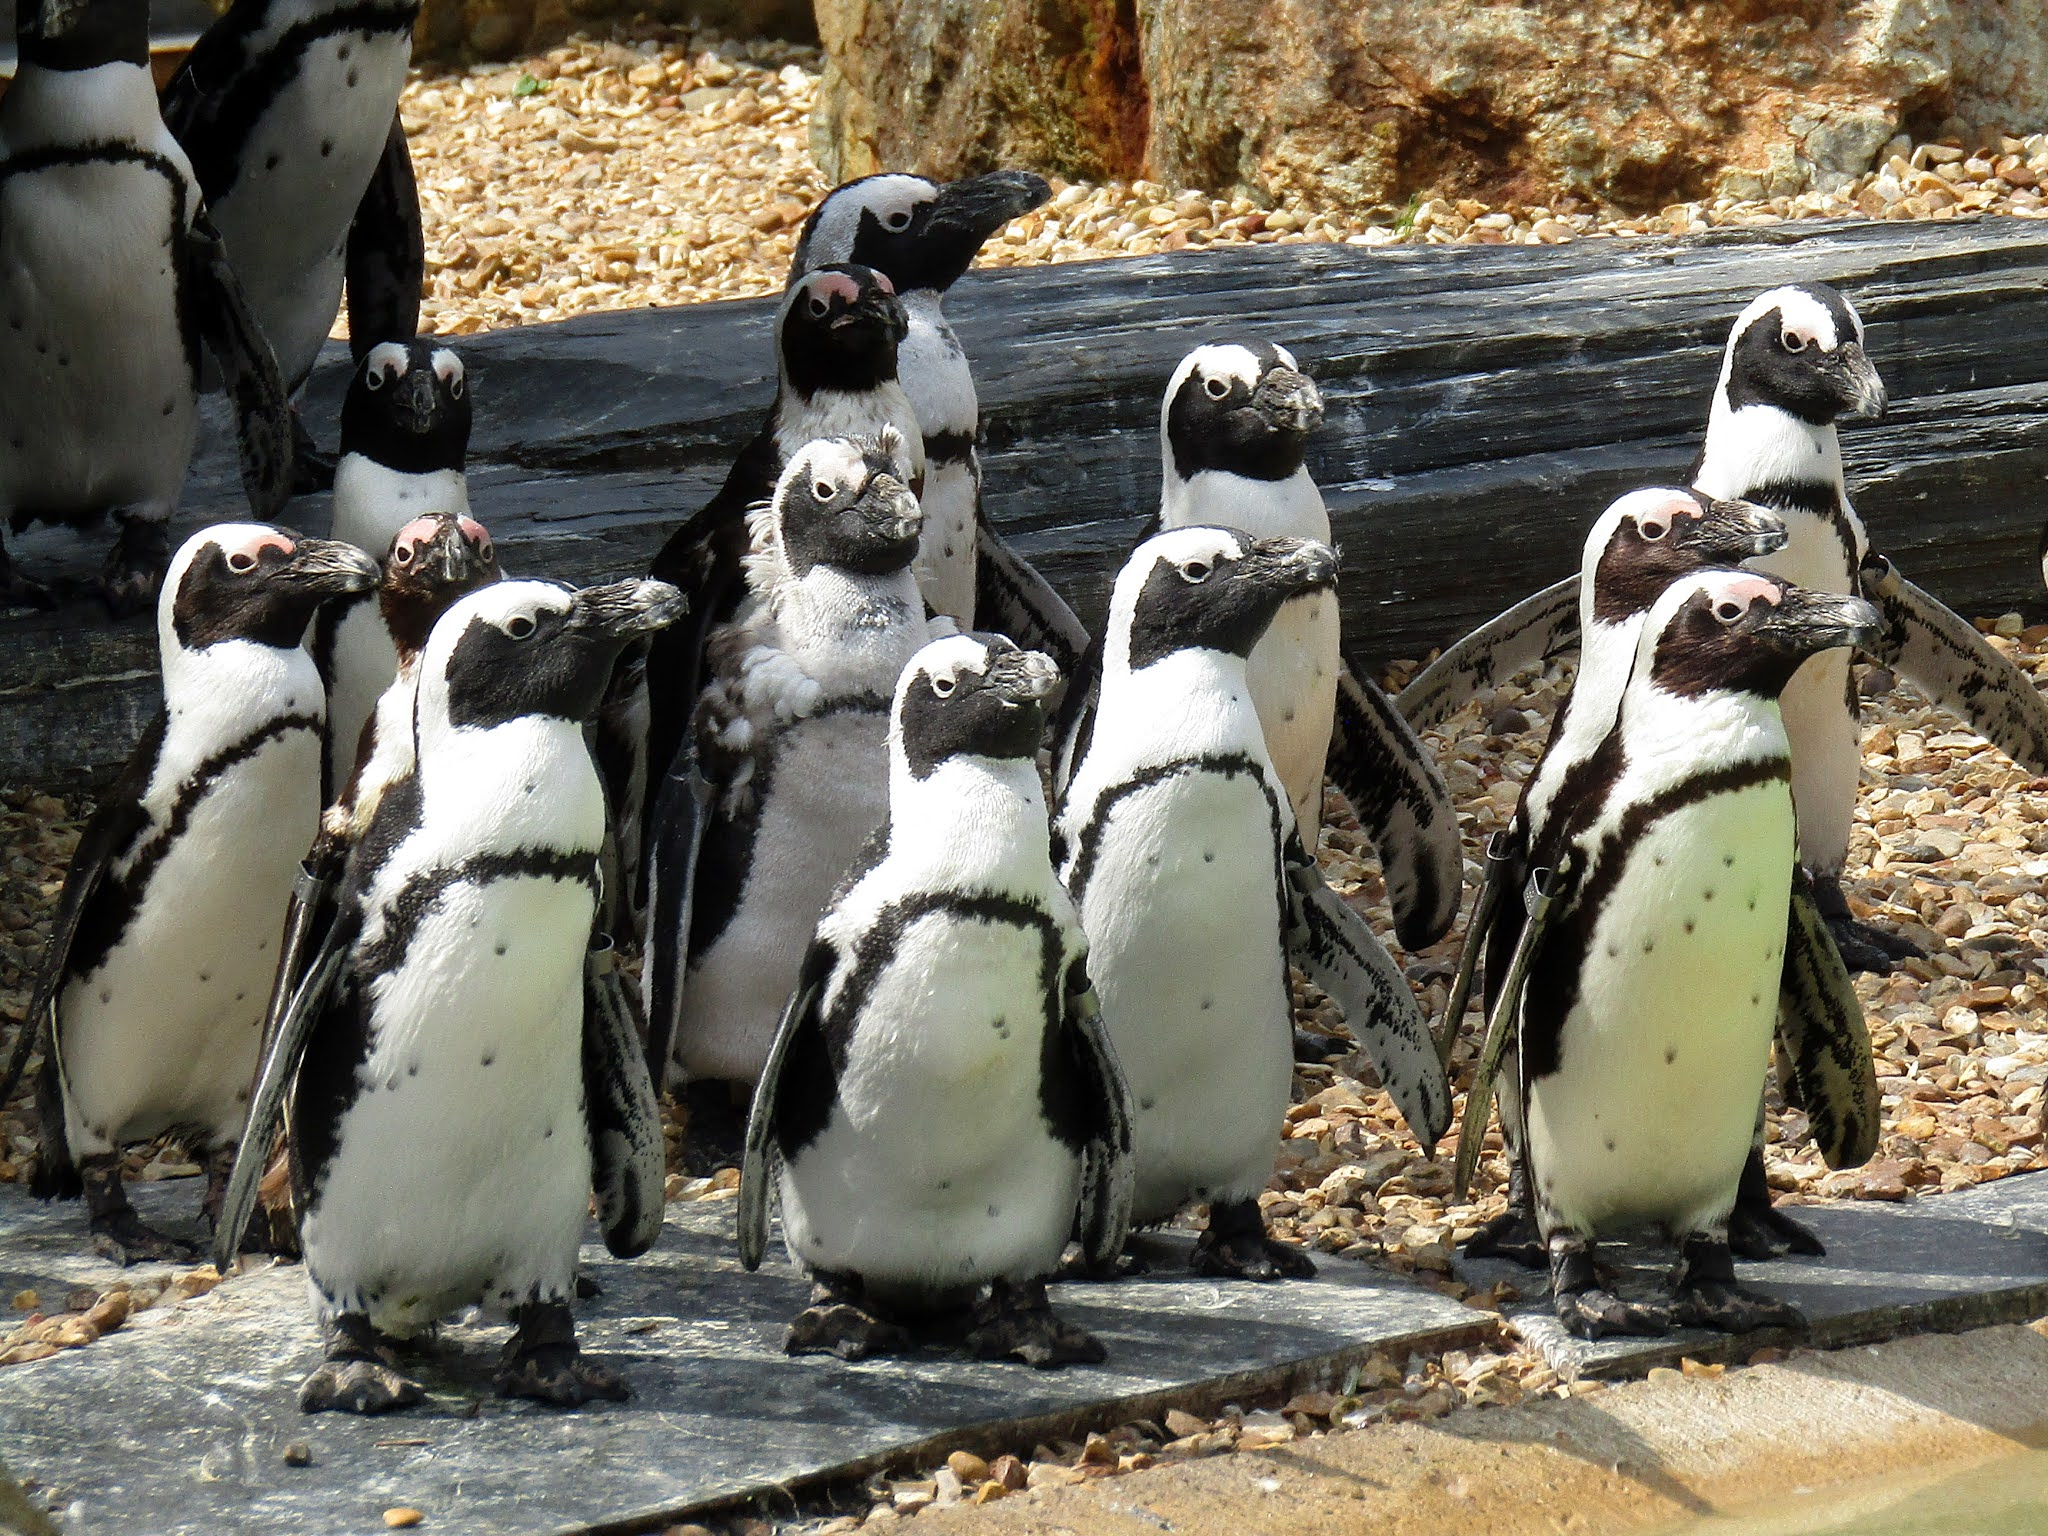 A photo of African black-footed penguins at Whipsnade Zoo.